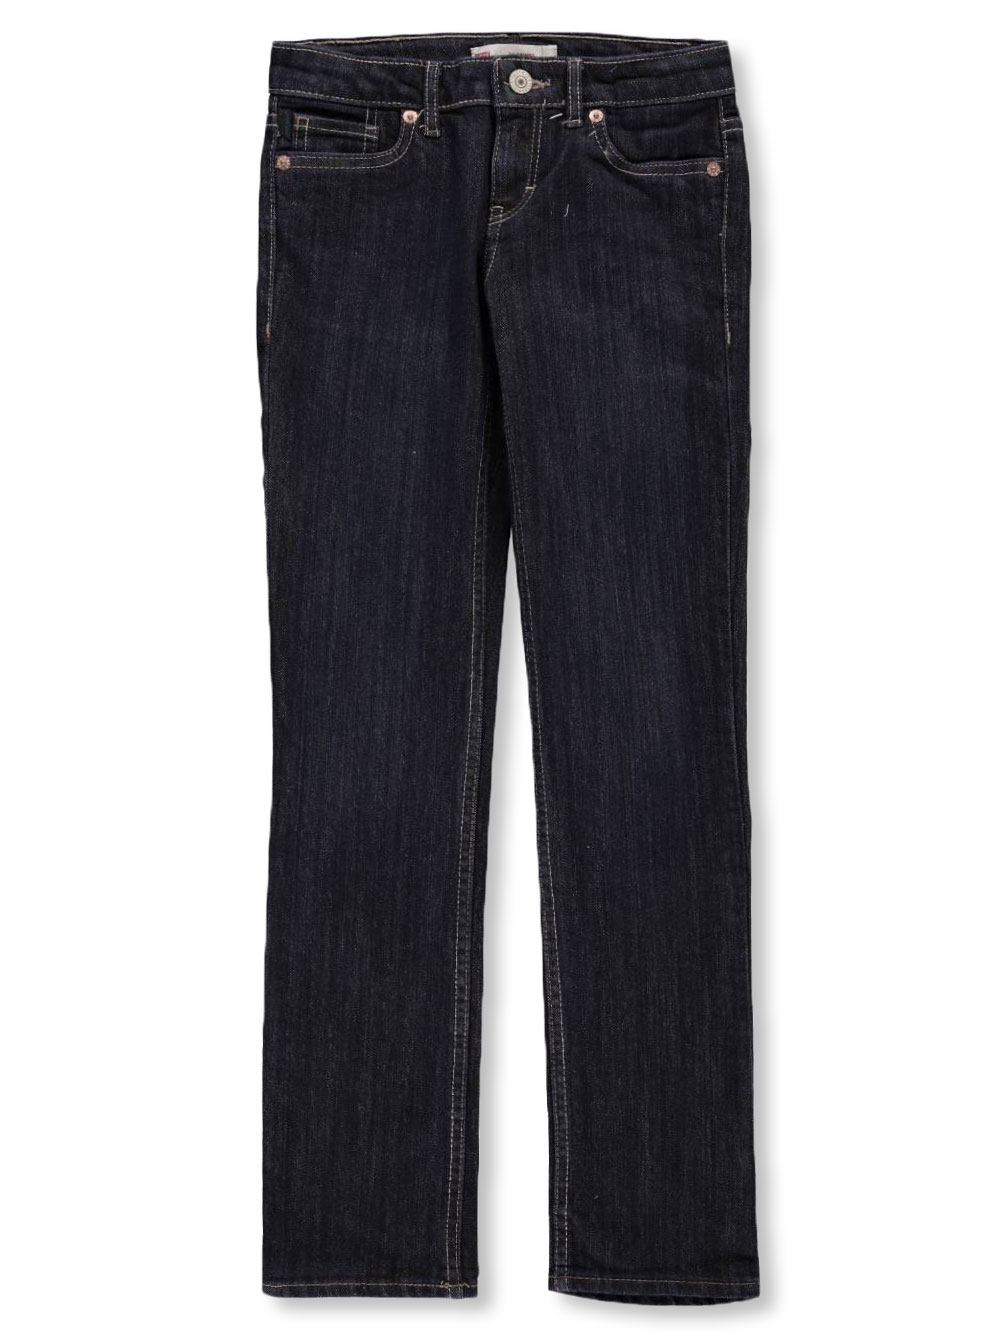 Size 10 Jeans for Girls